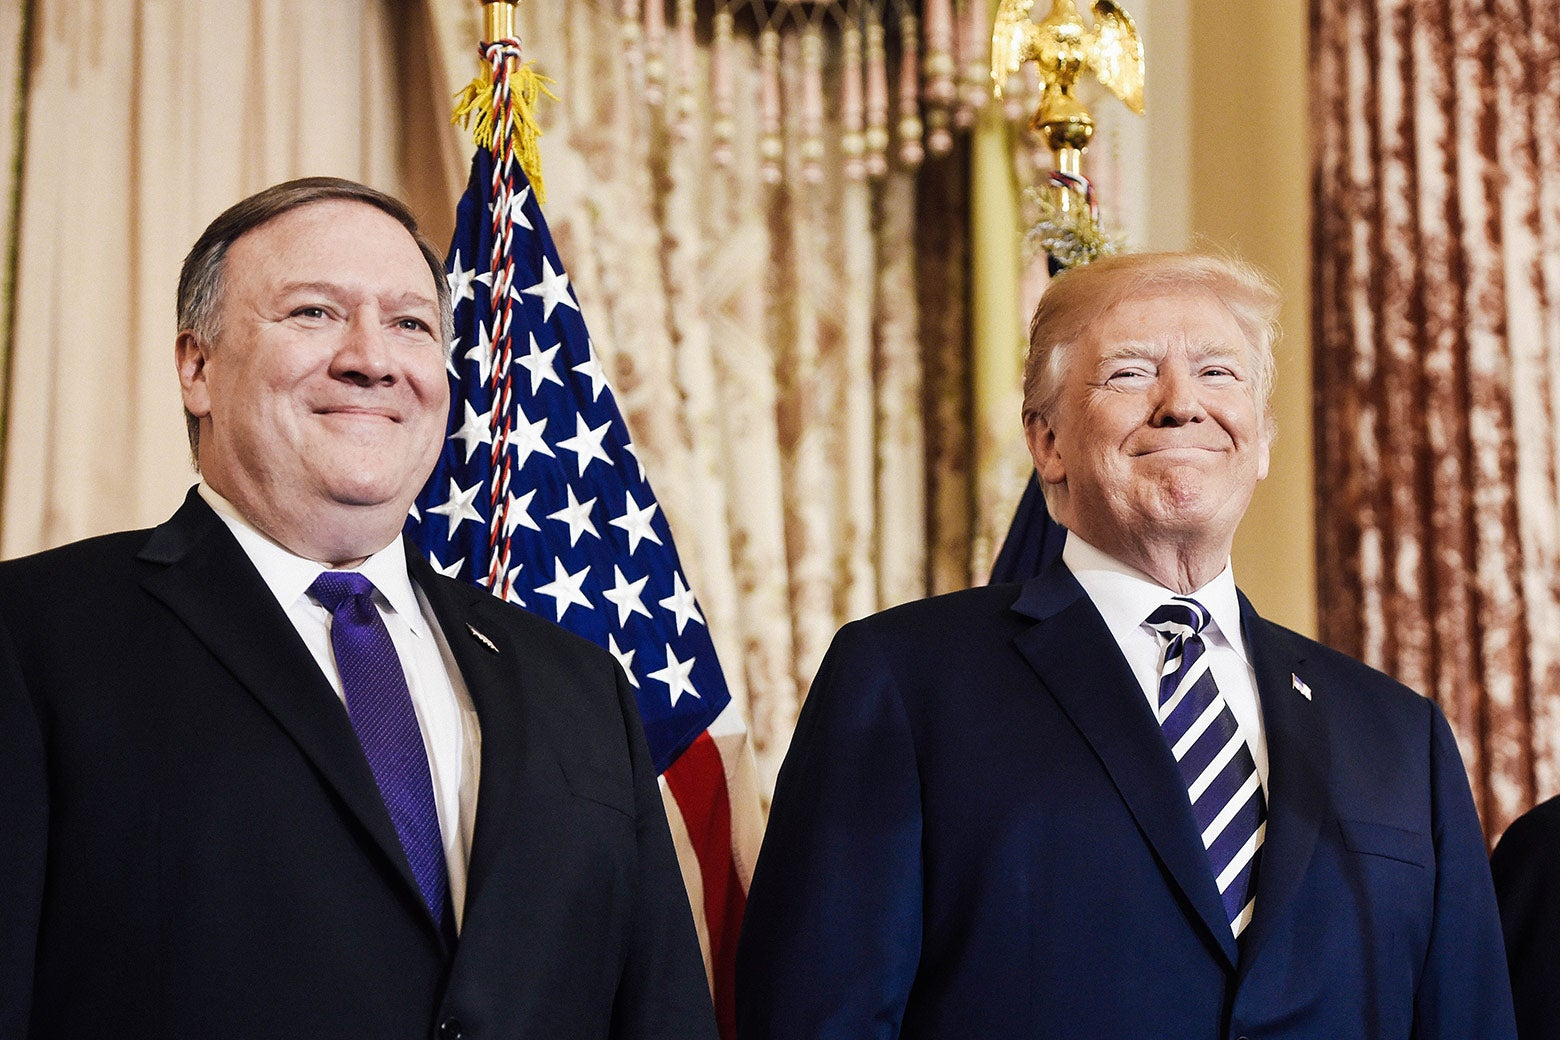 Mike Pompeo stands beside Donald Trump in an ornate room.